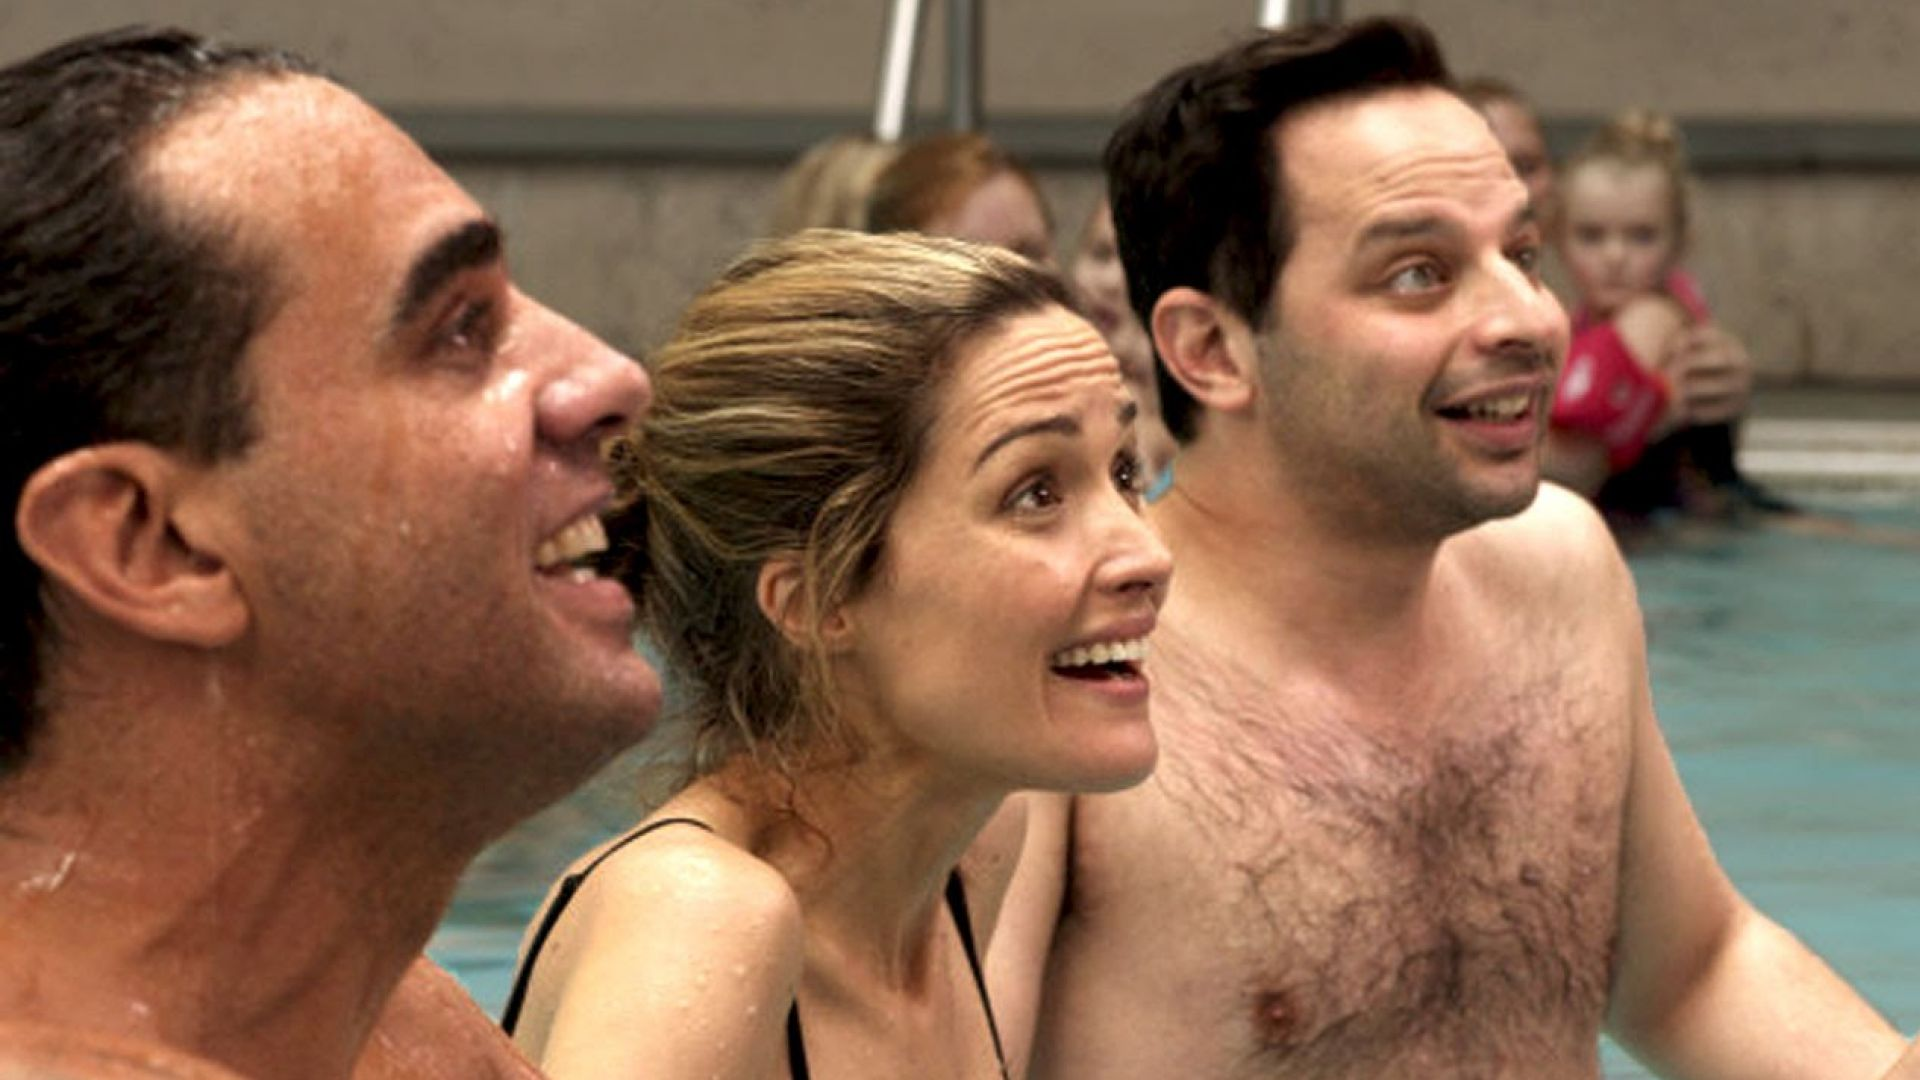 Official Trailer for 'Adult Beginners'